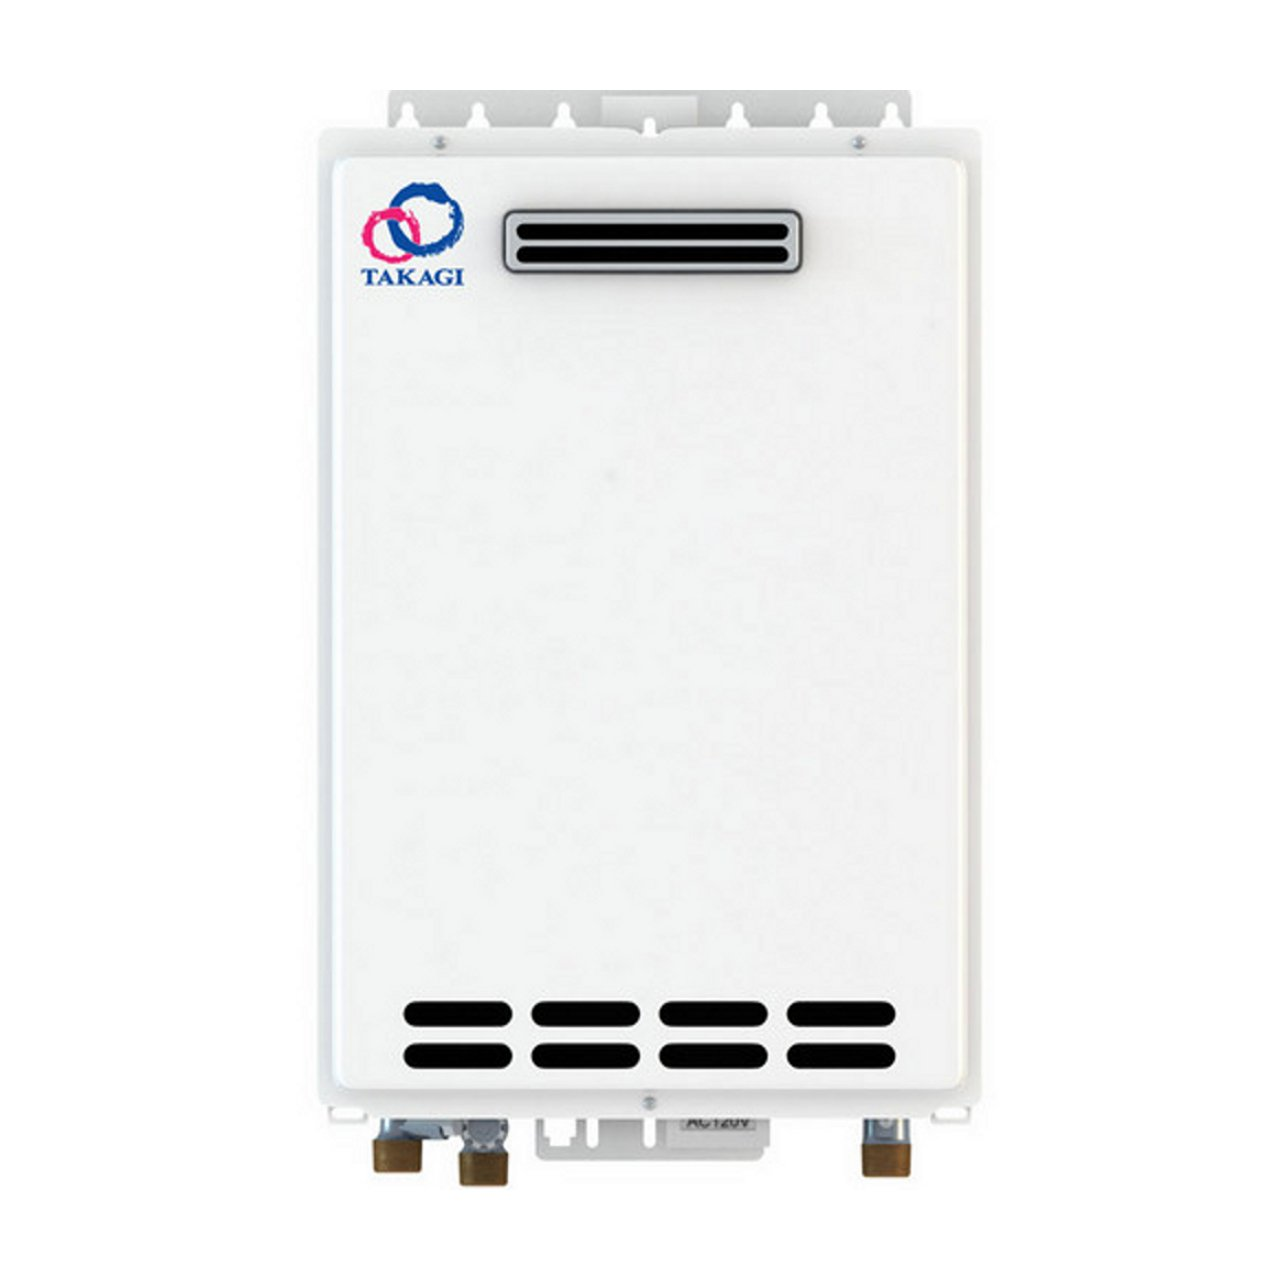 Takagi T-K4-OS-NG Tankless Water Heater,Natural Gas, Outdoor